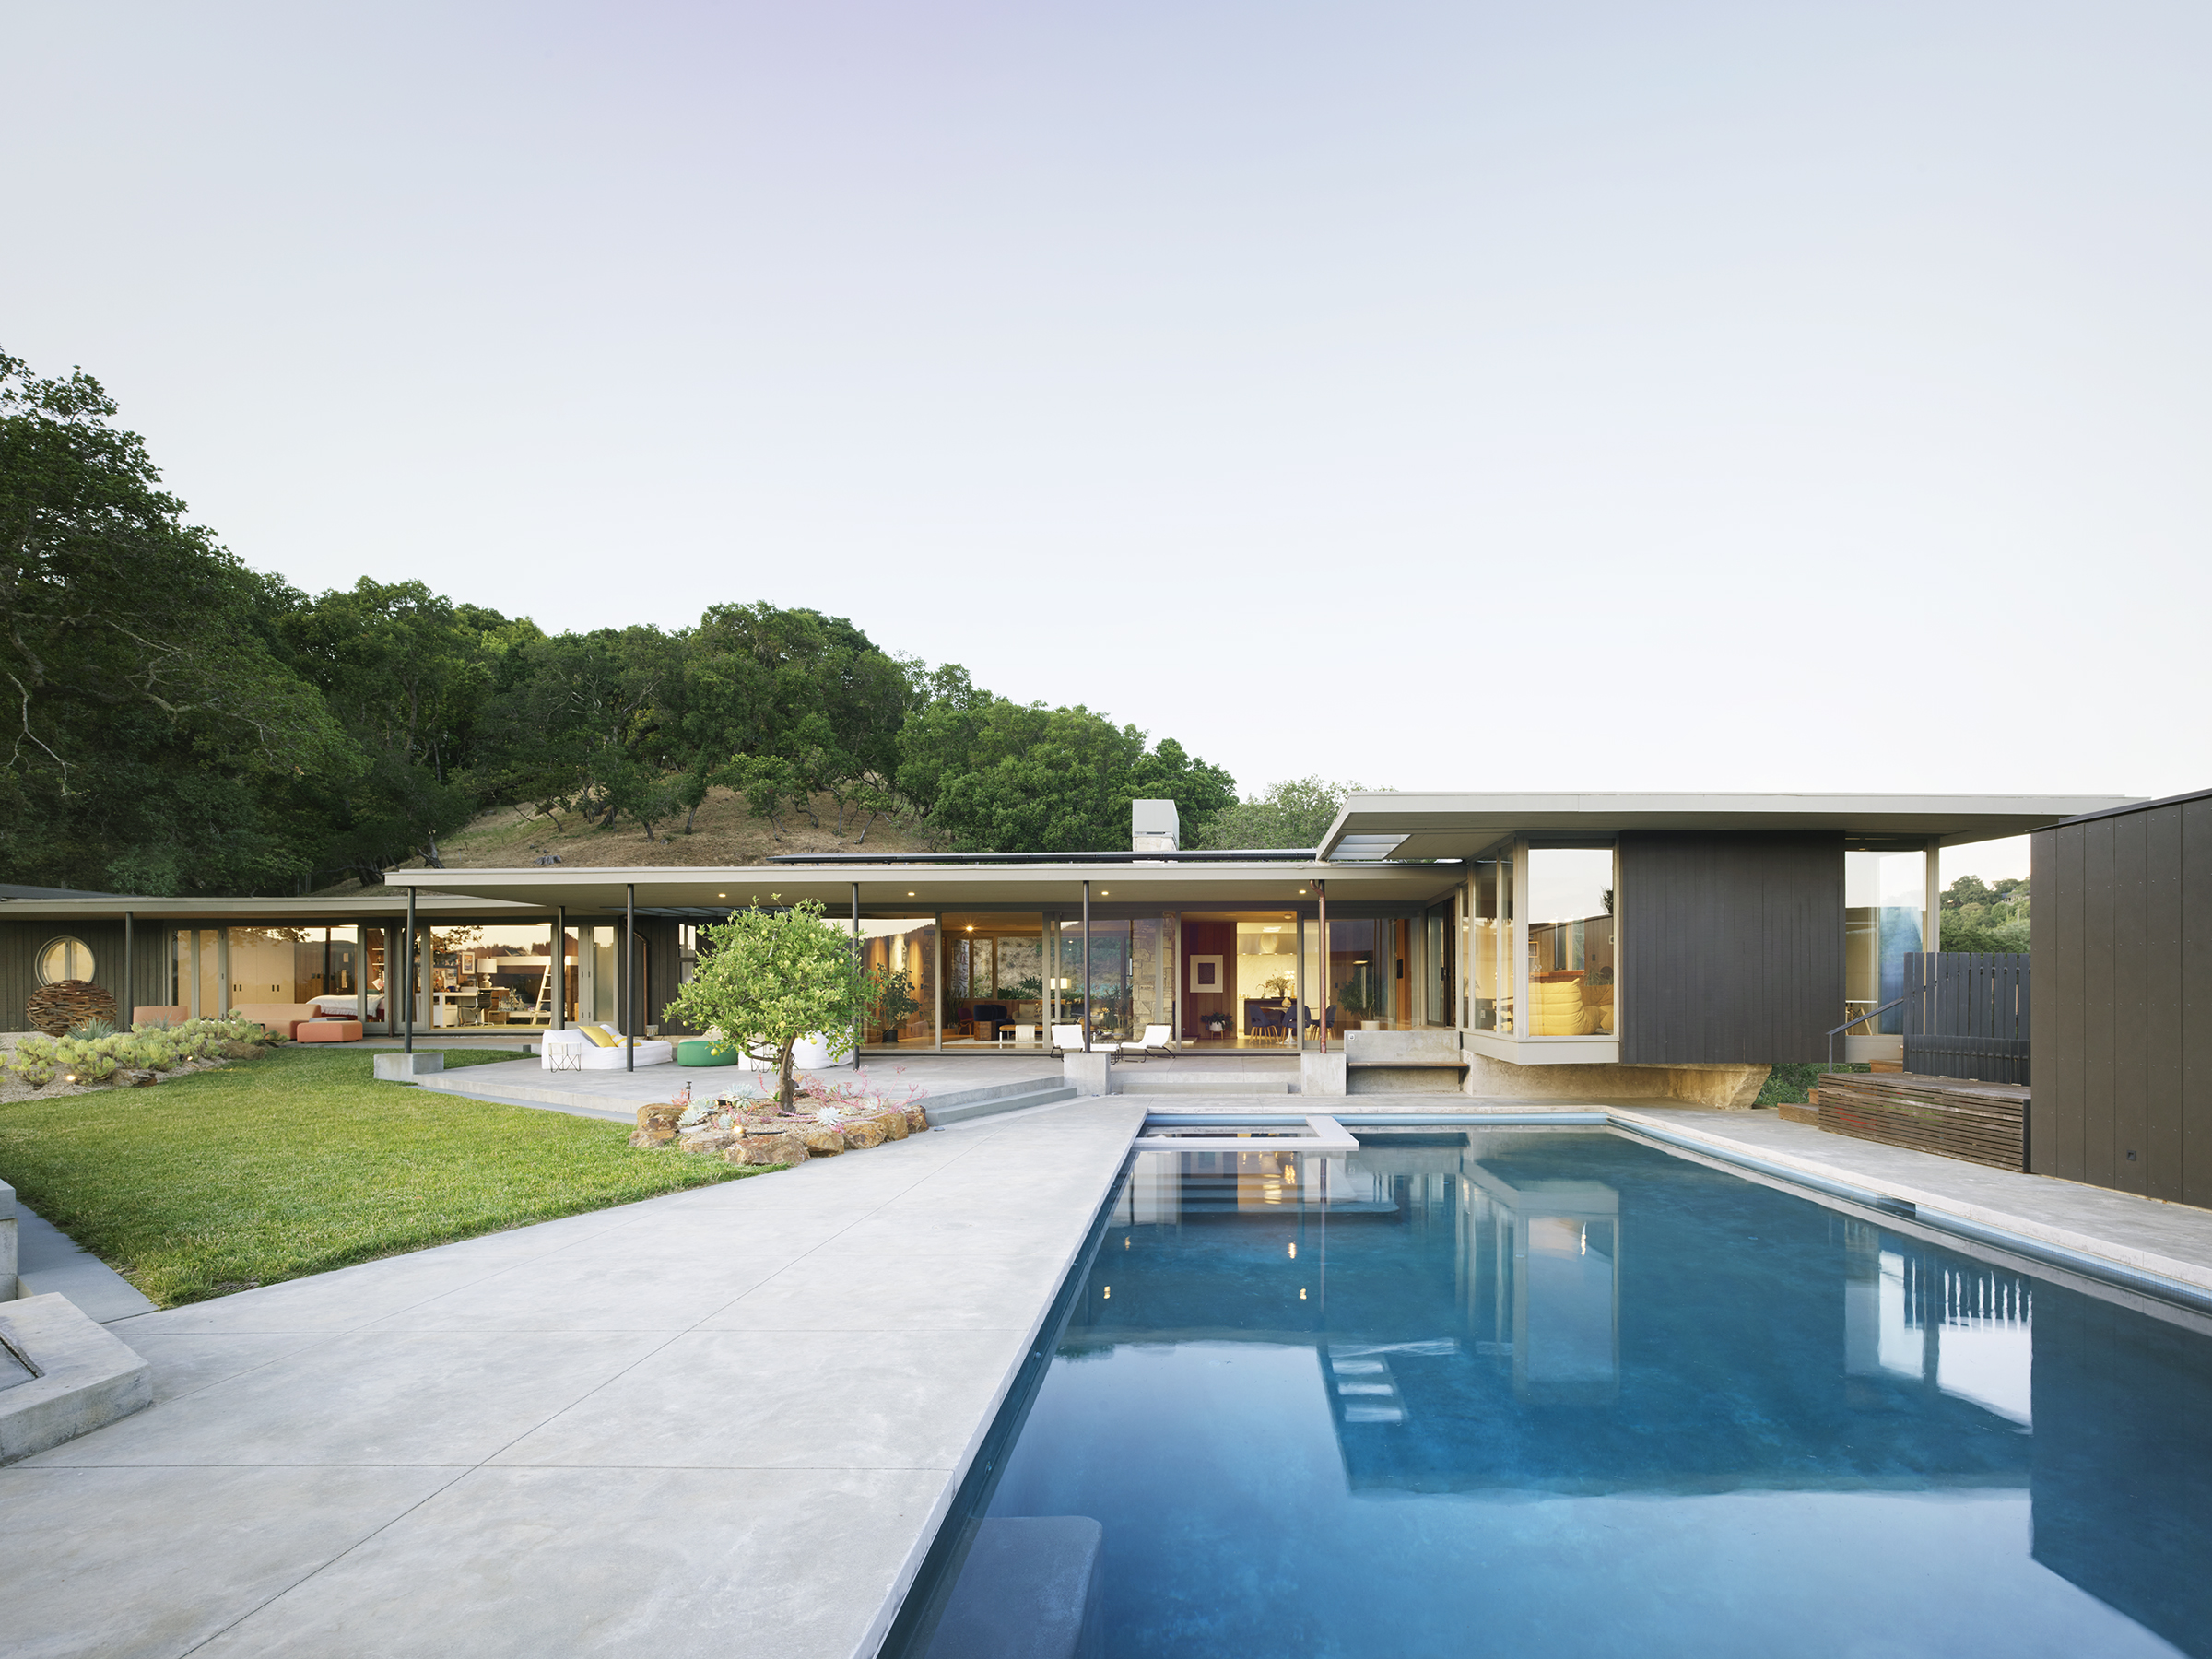 Herspring House renovated in Kentfield California, outside view of the house with swimming pool and garden